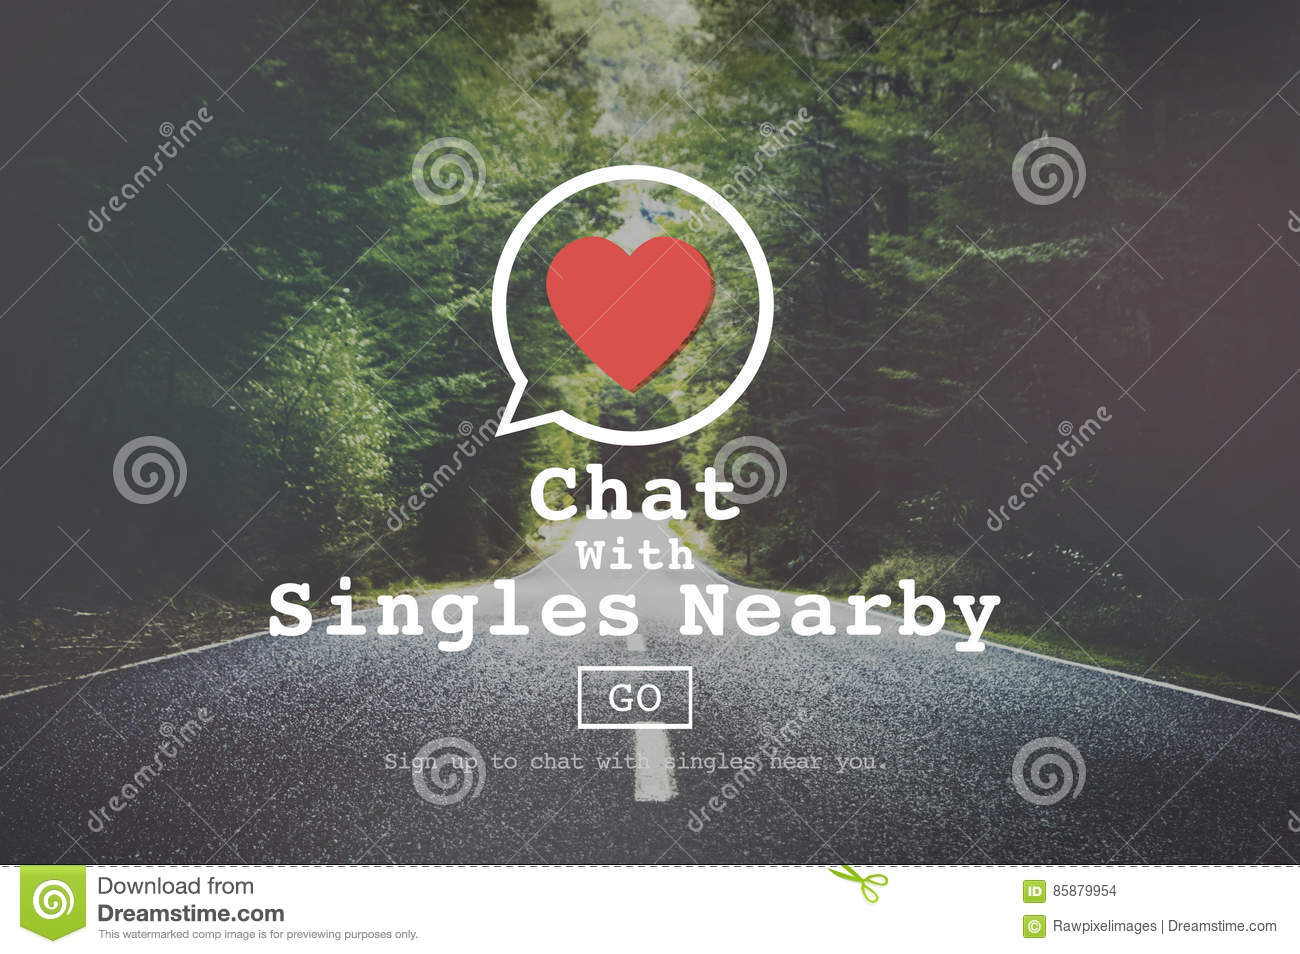 Chat with nearby singles